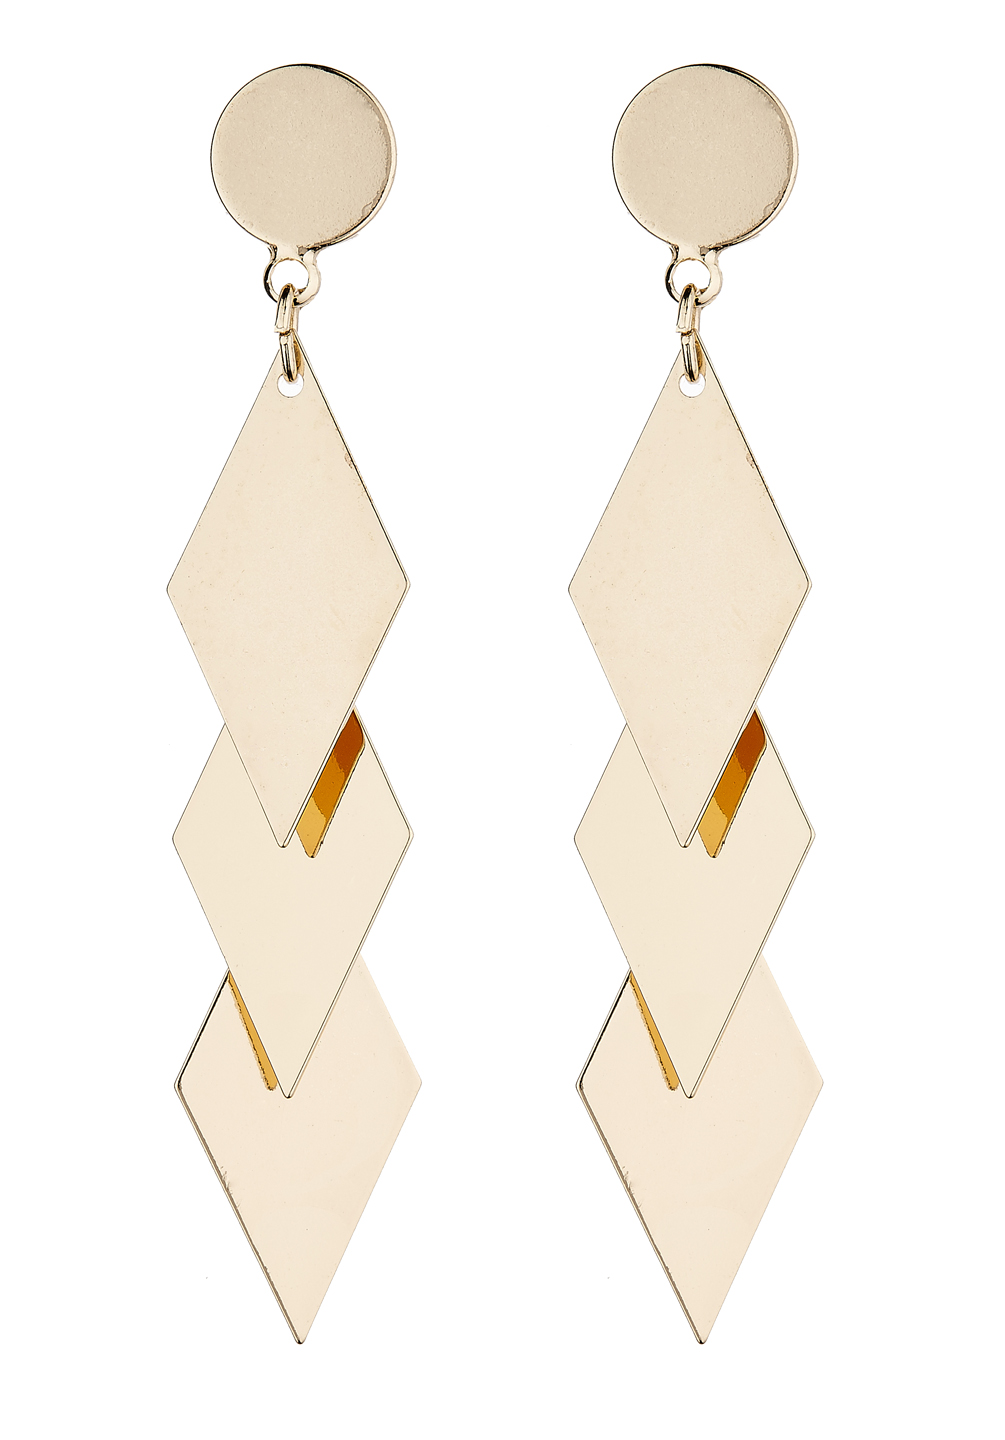 Clip On Earrings - Kallie G - gold drop earring with three linked diamond shapes